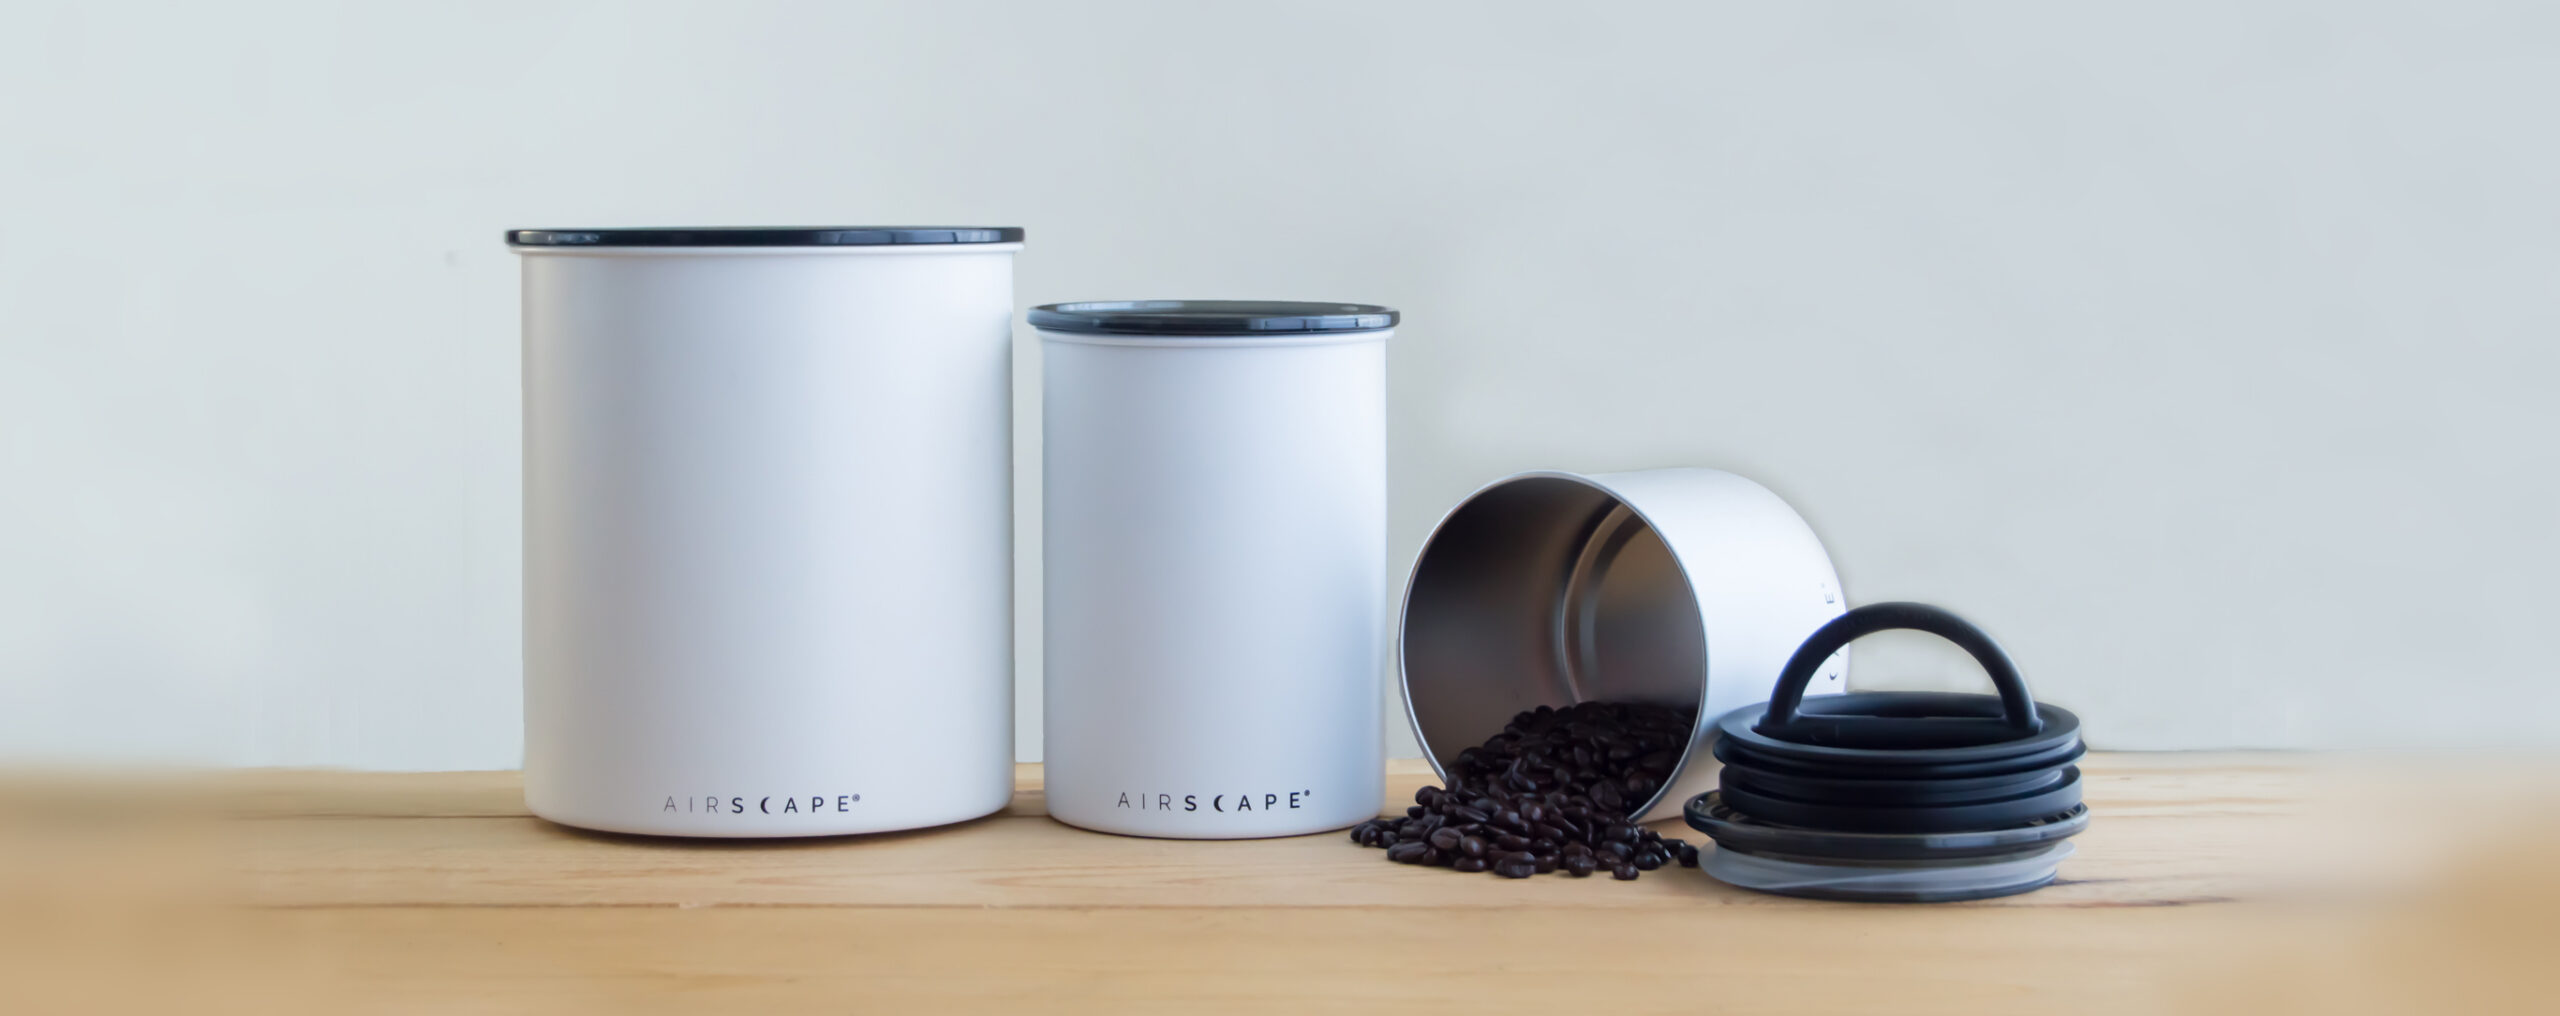 Photo of three matte white Airscape coffee storage containers in various sizes